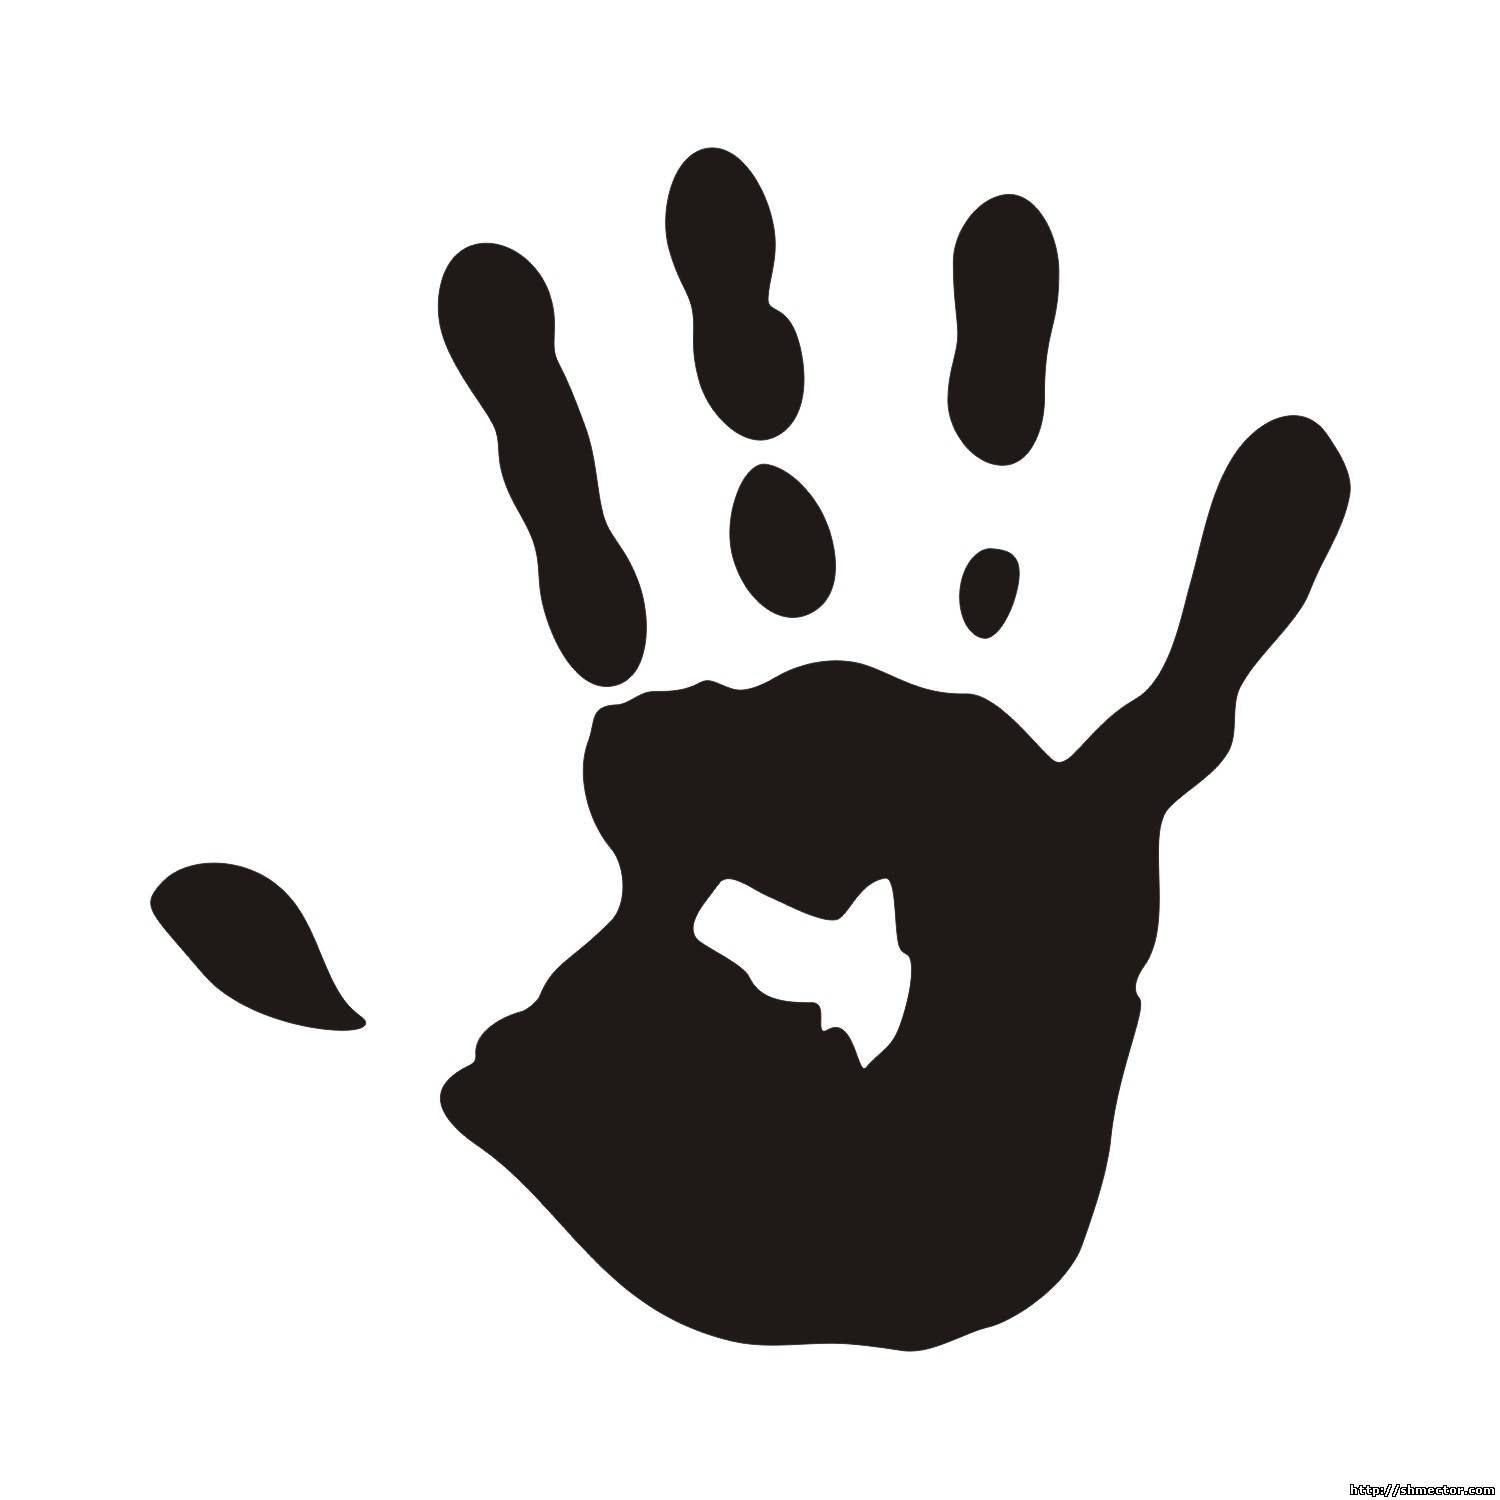 hands silhouette vector at getdrawings com free for personal use rh getdrawings com vector hands free download vector handshake icon